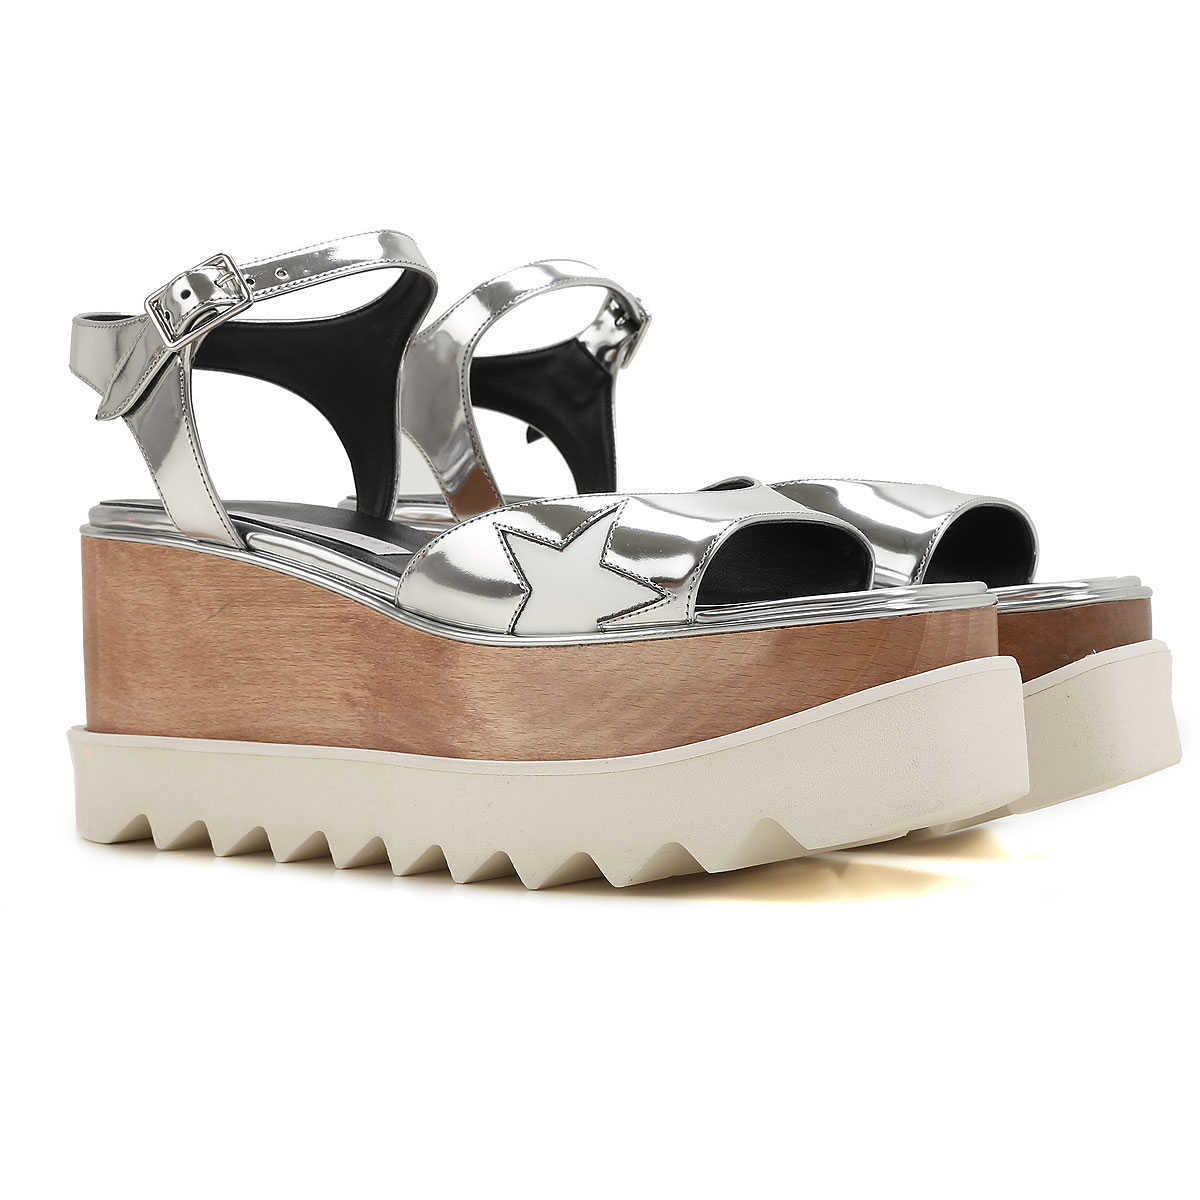 Stella McCartney Wedges for Women On Sale Silver DK - GOOFASH - Womens HOUSE SHOES